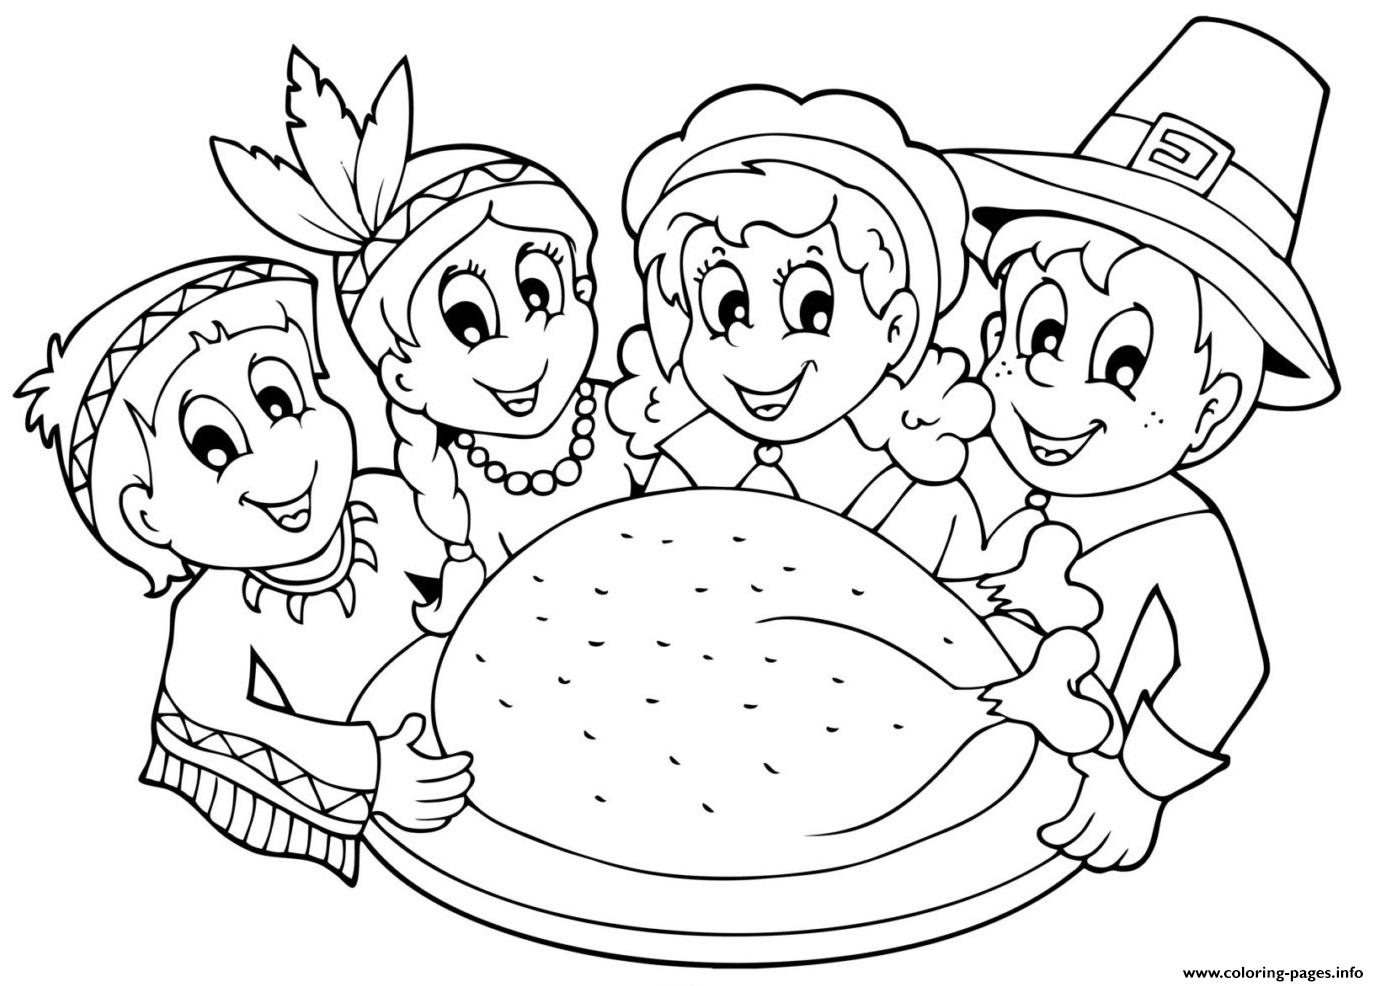 Christian Thanksgiving Coloring Pages - GetColoringPages.com | 986x1379